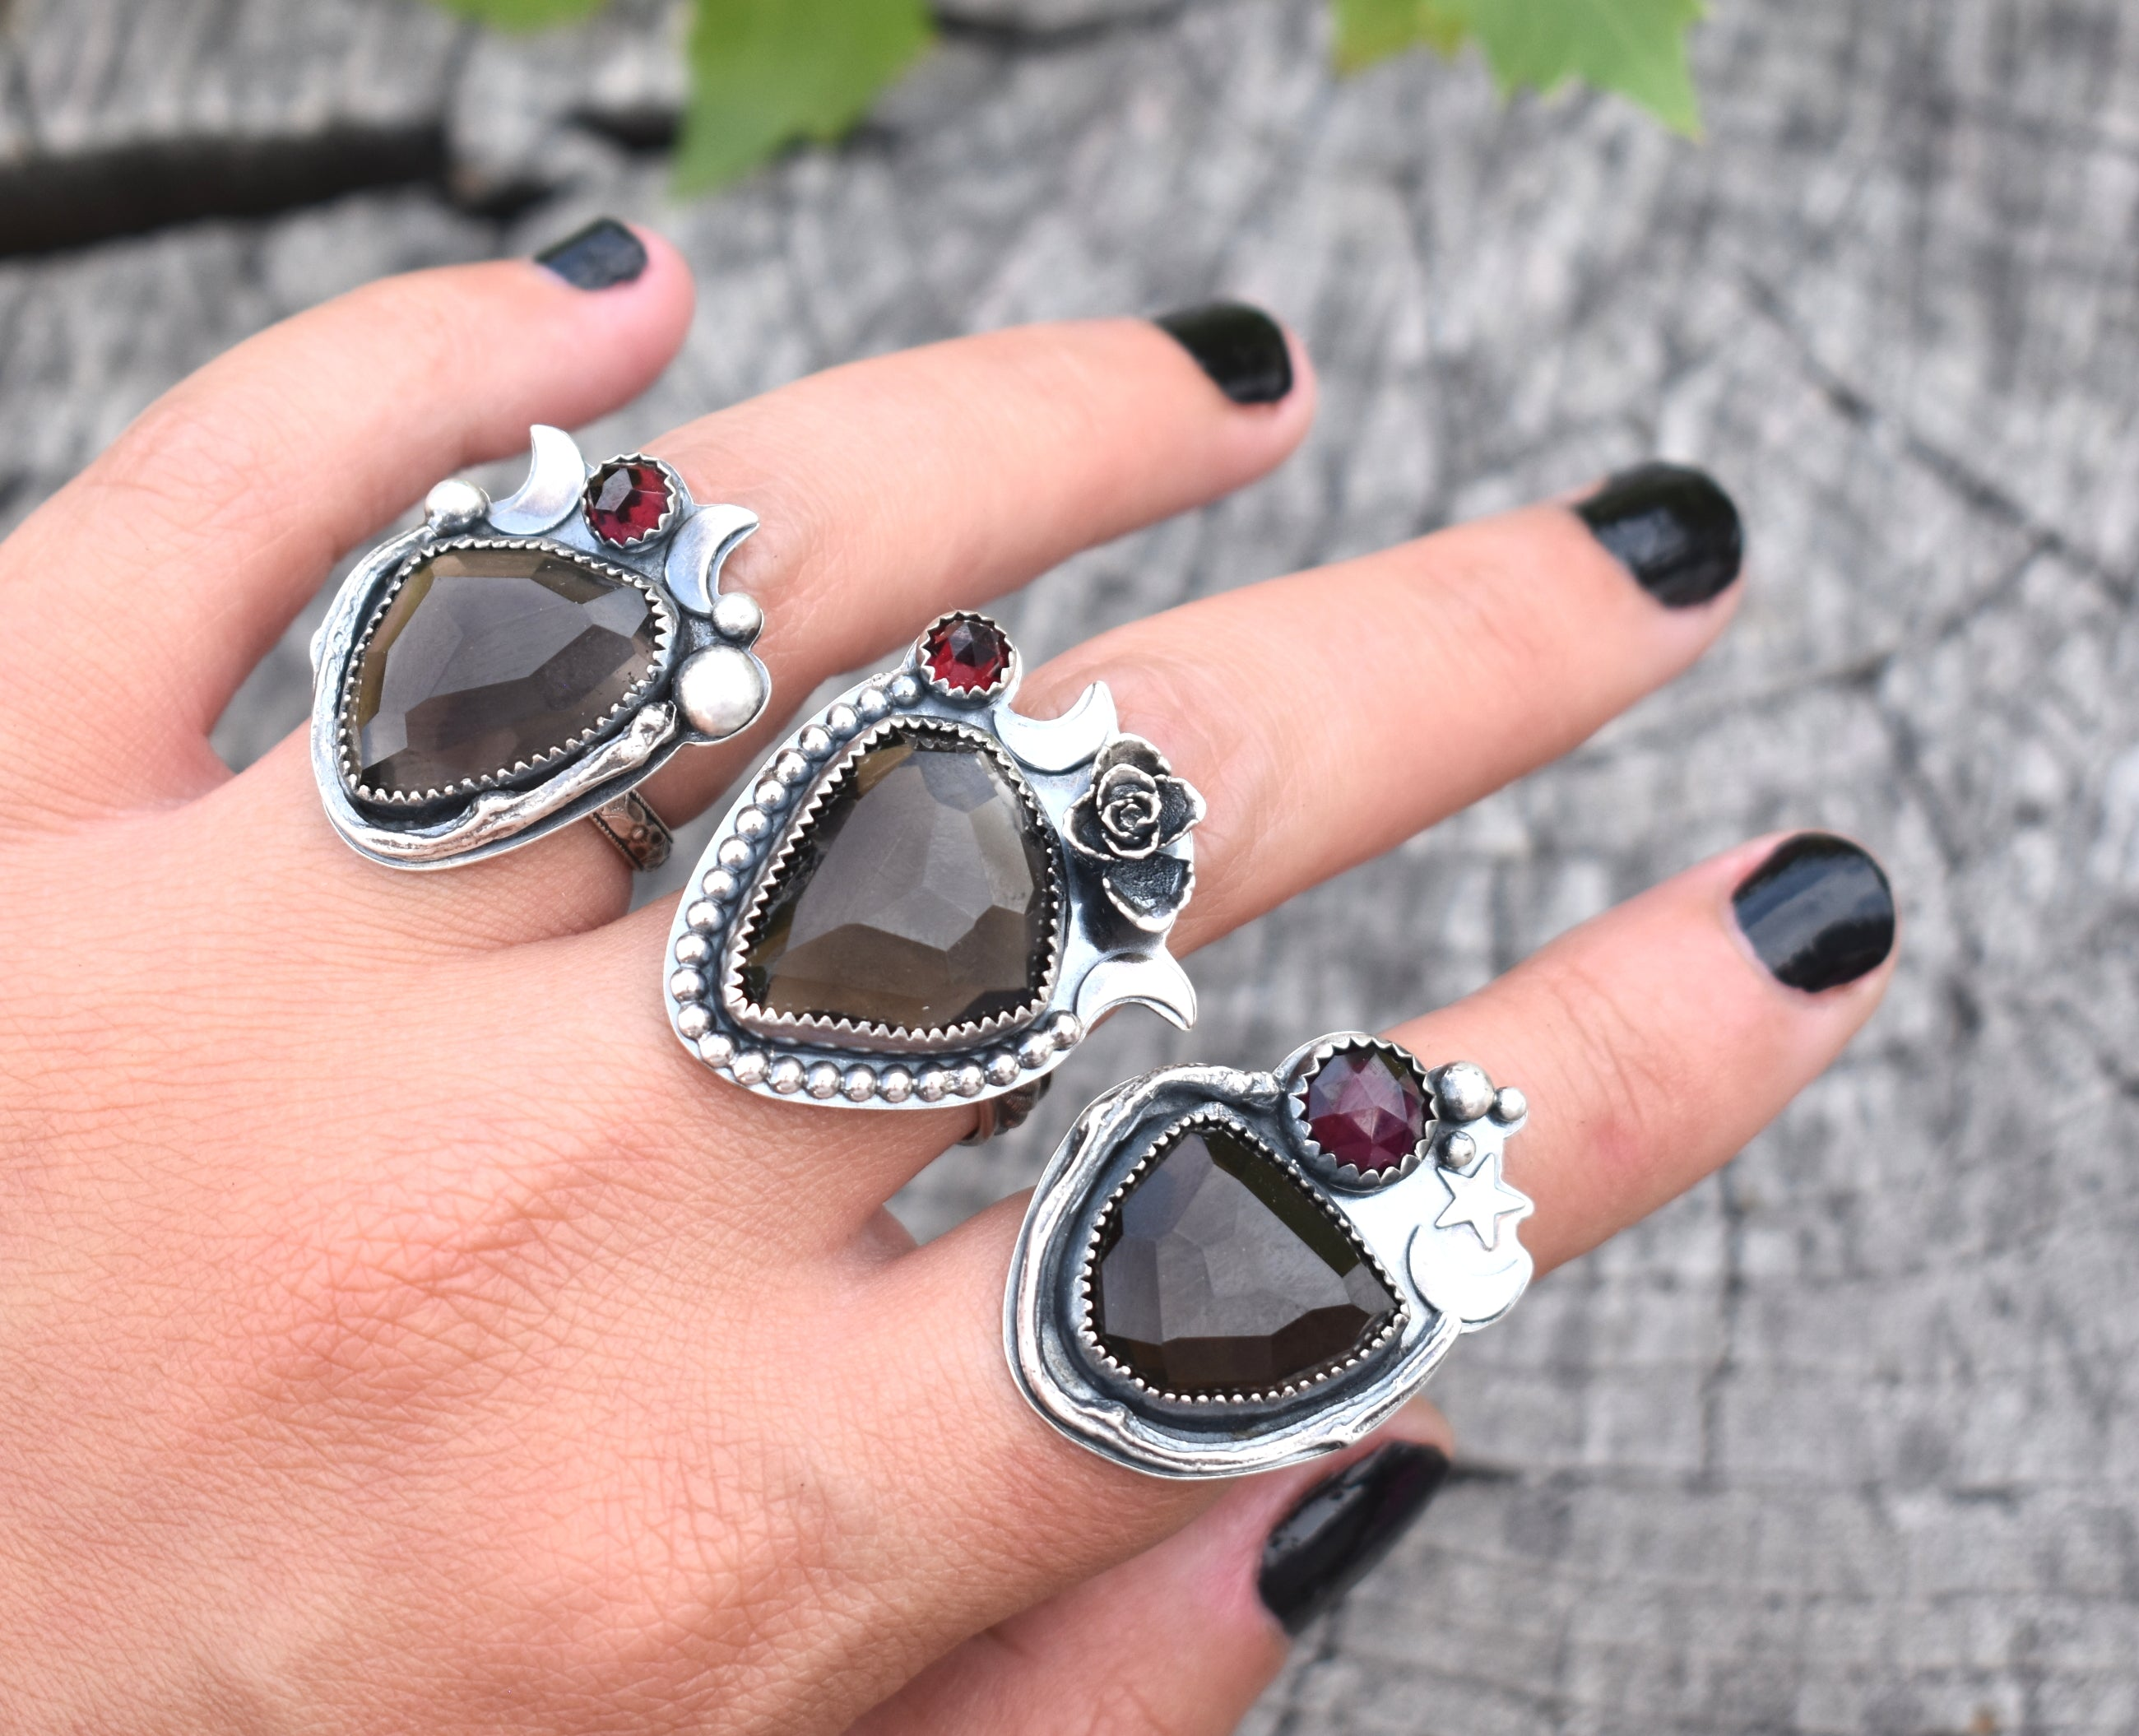 Smoky Quartz & Pyrope Garnet Ring #1 US Ring Size 6/6.25